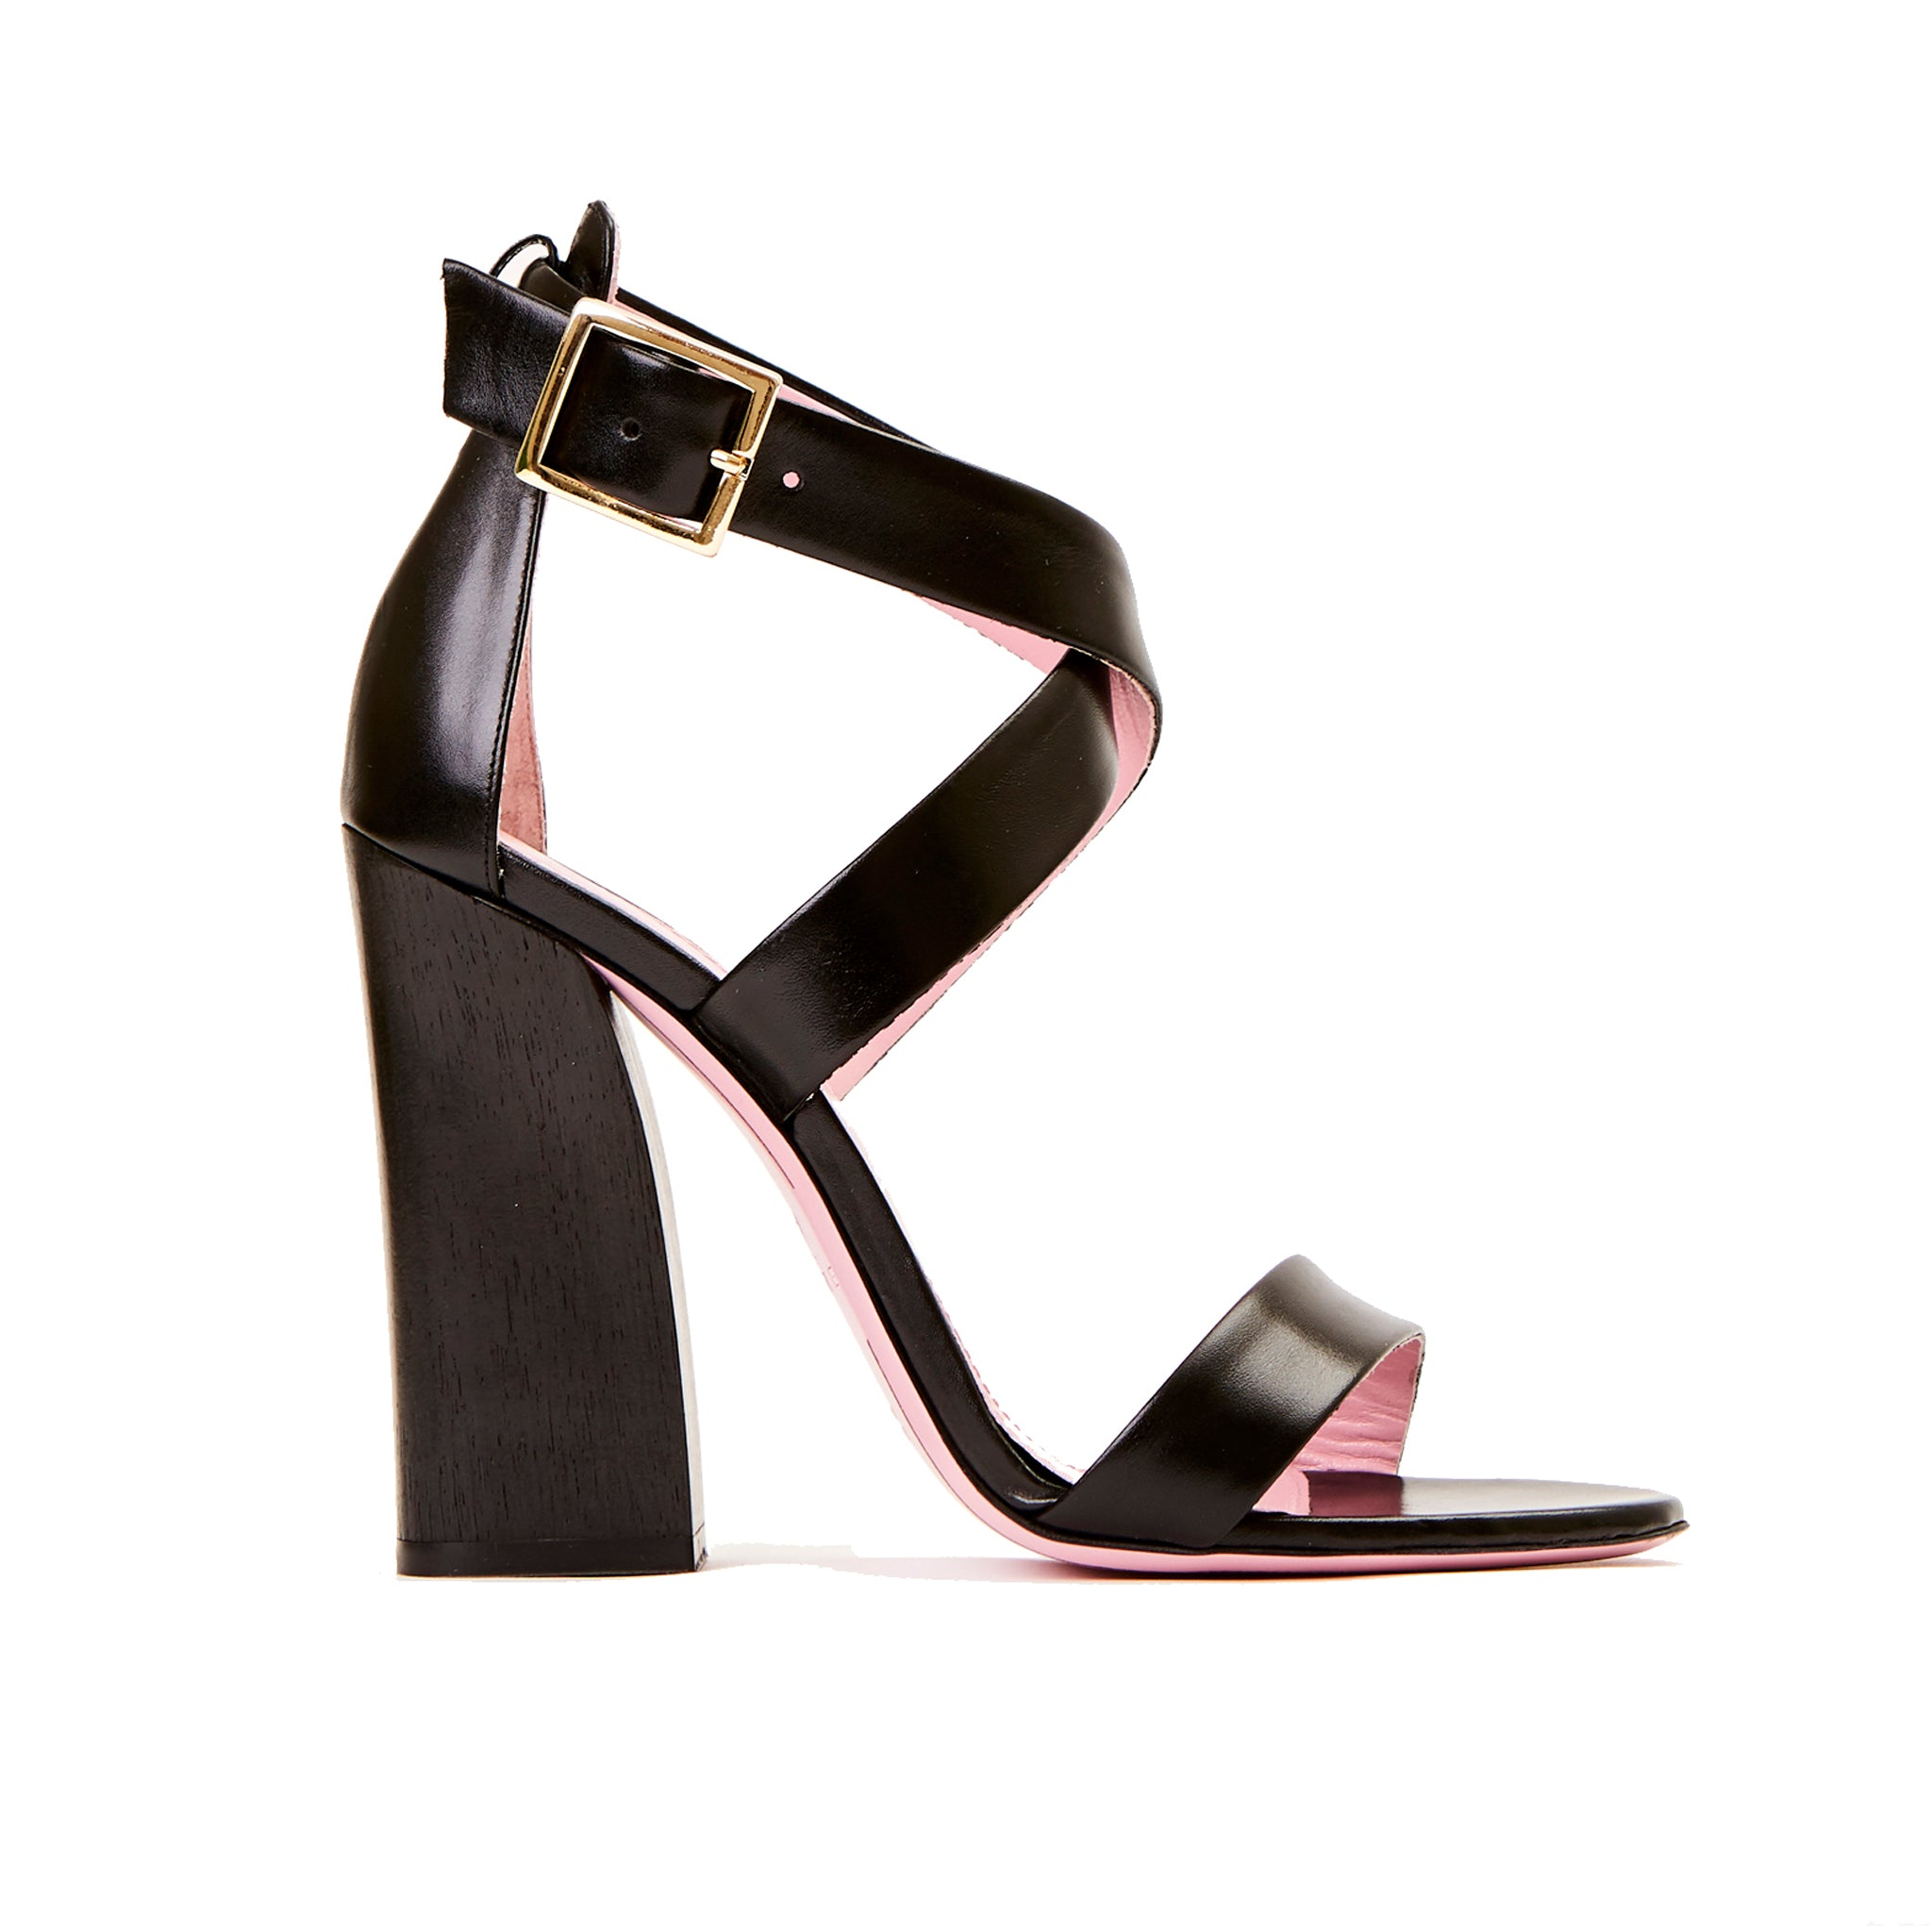 Phare Cross strap block heel sandal with wooden heel in black leather